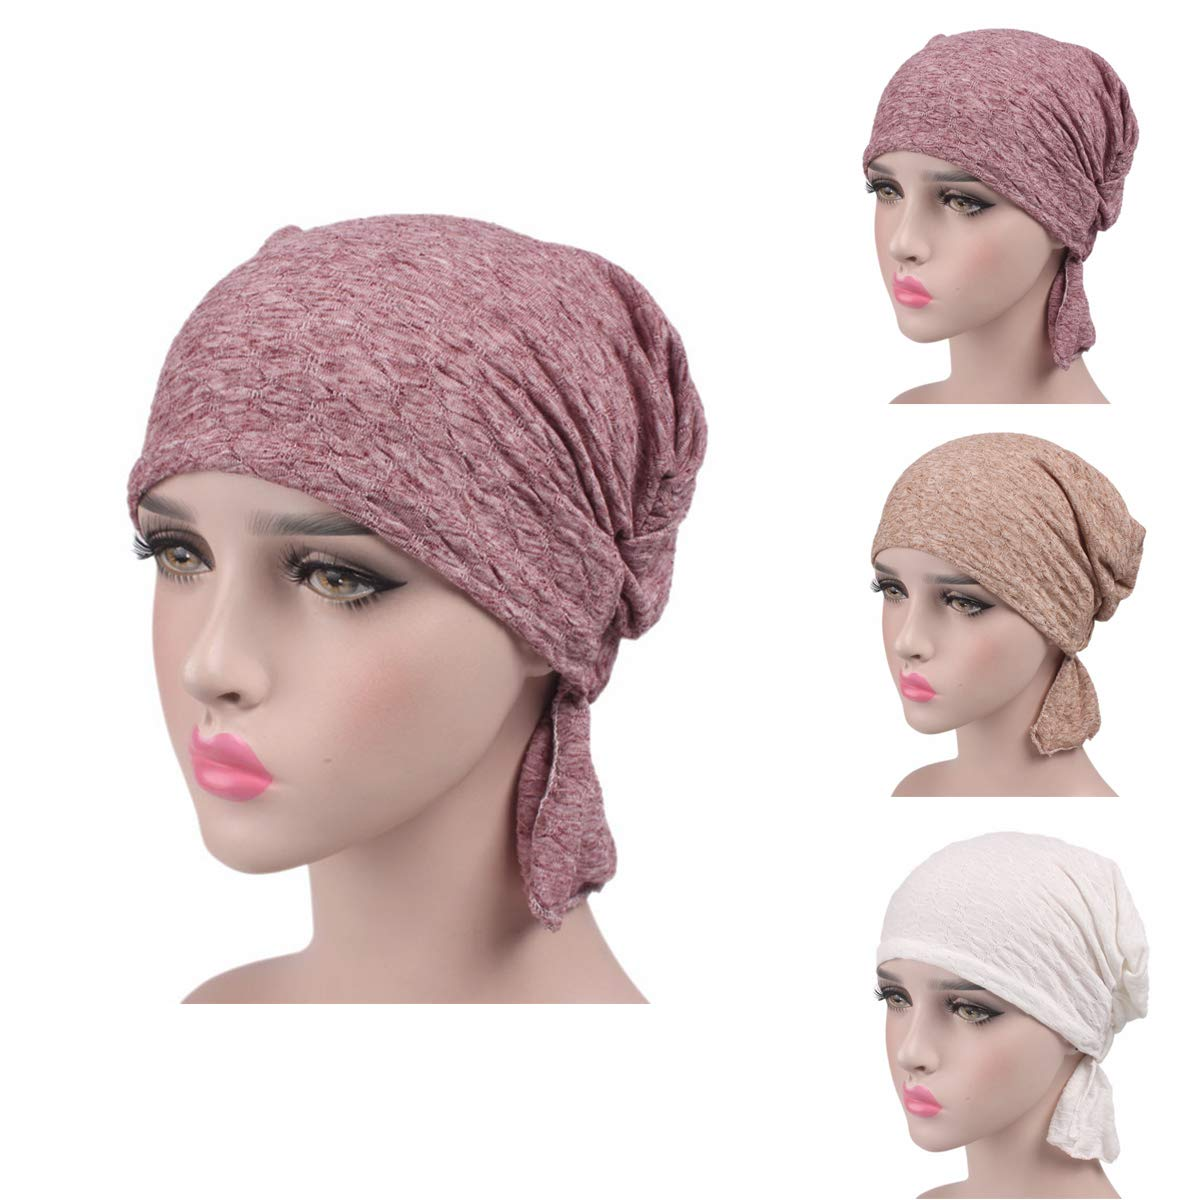 Ever Fairy 6 Colors Chemo Cancer Head Scarf Hat Cap Ethnic Cloth Print Turban Headwear Women Women's Ruffle Beanie Scarf (3 Color Pack-B)